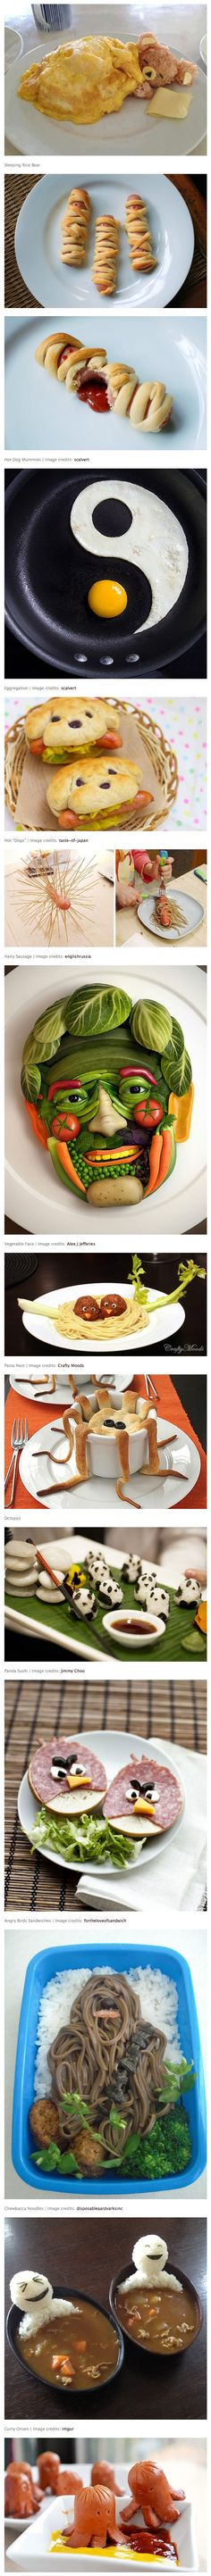 Cool and Creative Food Art Ideas. I teach the kids not to play with their food. But this is so cool